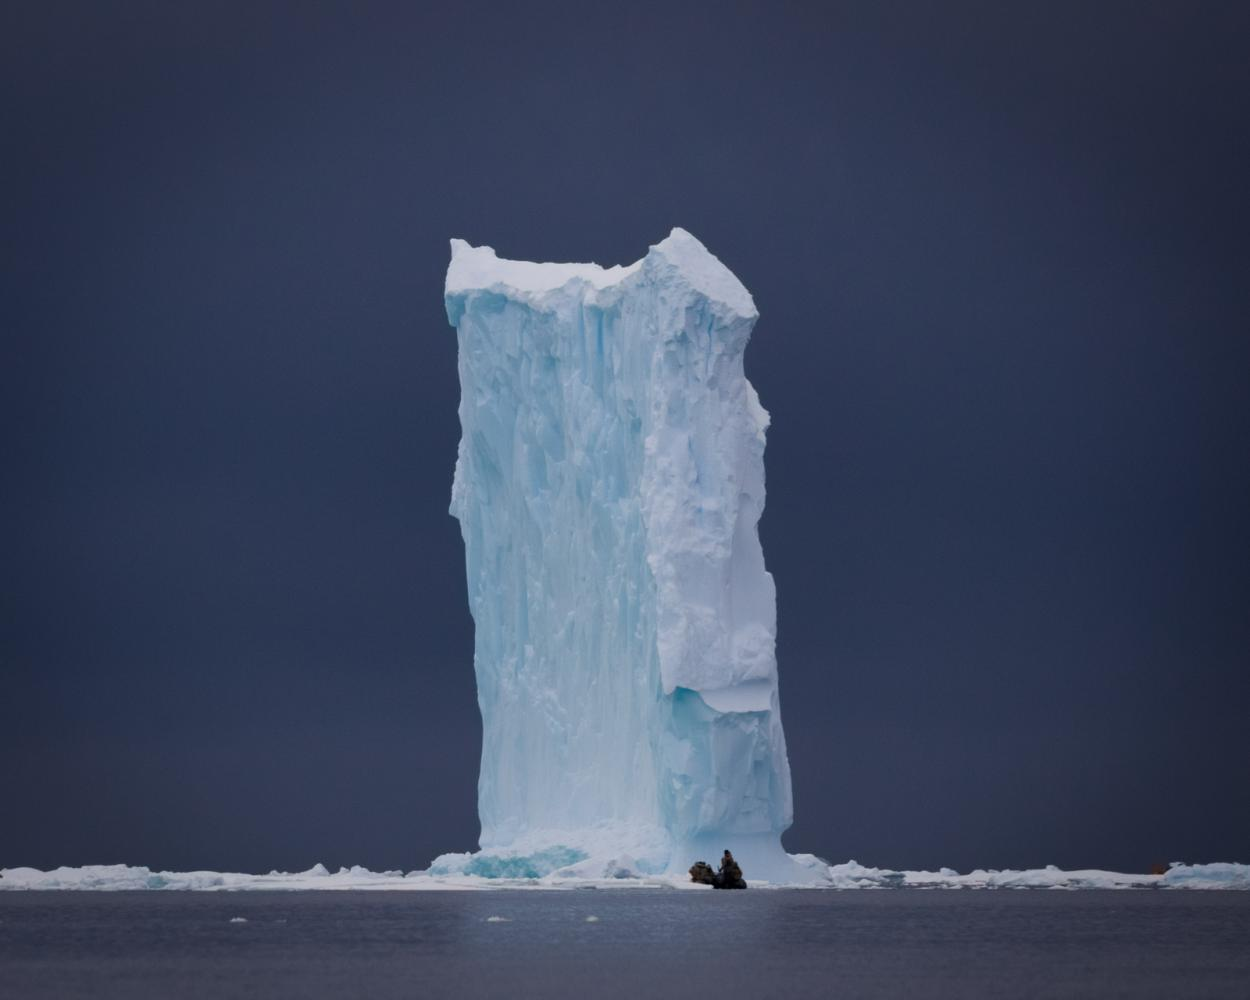 An expedition guide approaches a massive iceberg in Wilhelmina Bay, Antarctica.